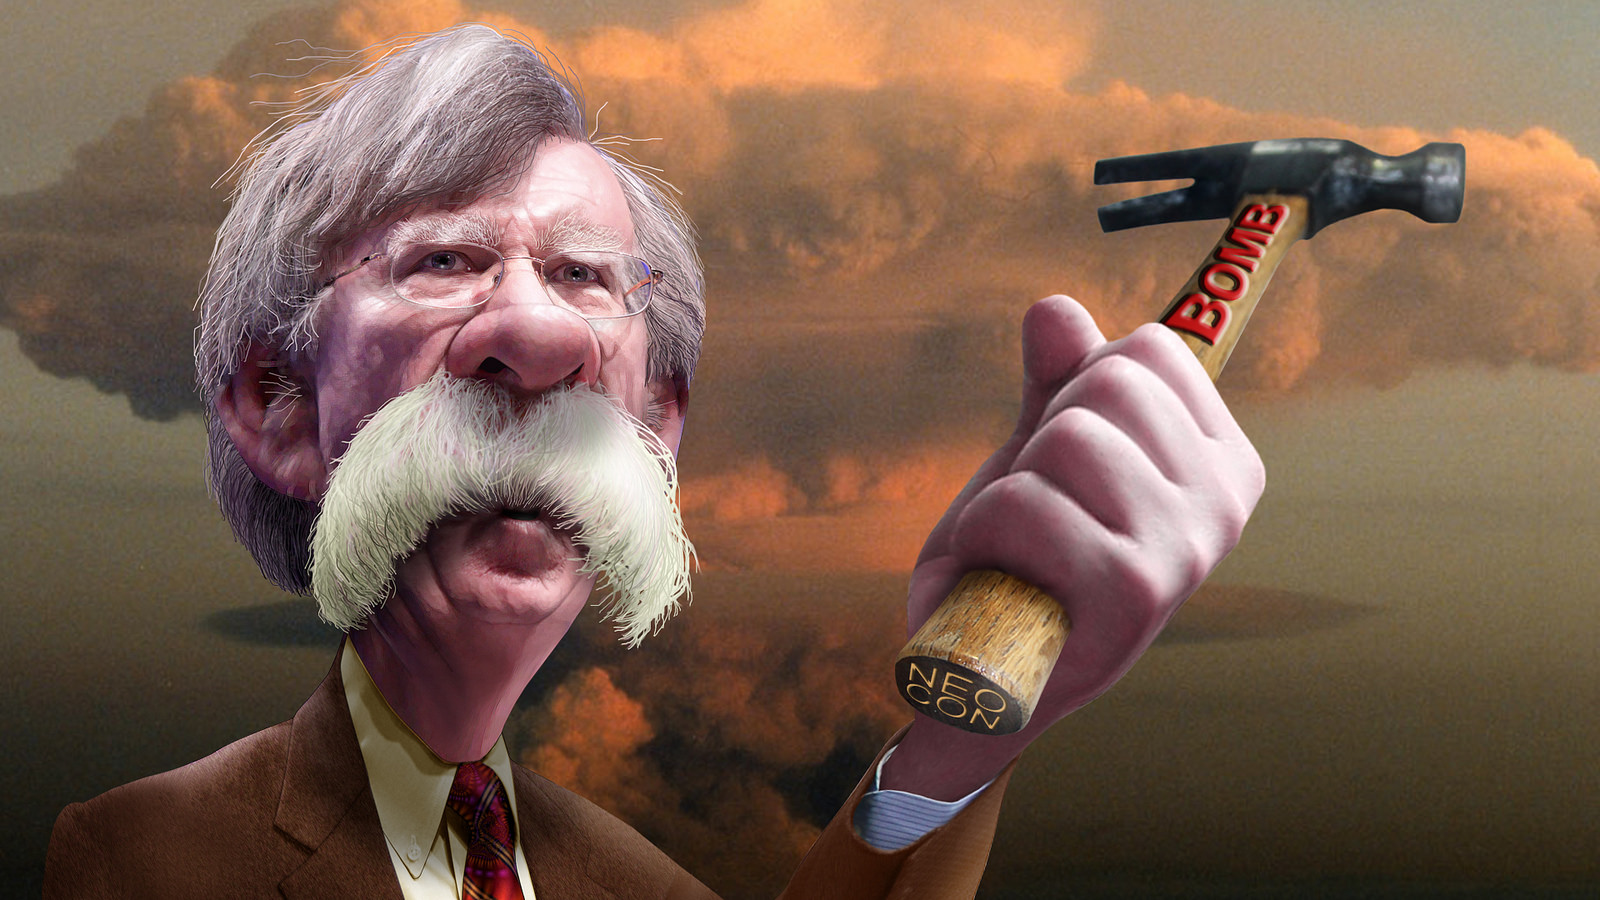 John-Robert-Bolton-Kritisches-Netzwerk-Volksverhetzung-warmonger-Nationaler-Sicherheitsberater-rabble-rouser-Rattenfaenger-aggression-policy-Aggressionspolitik-Demagogie